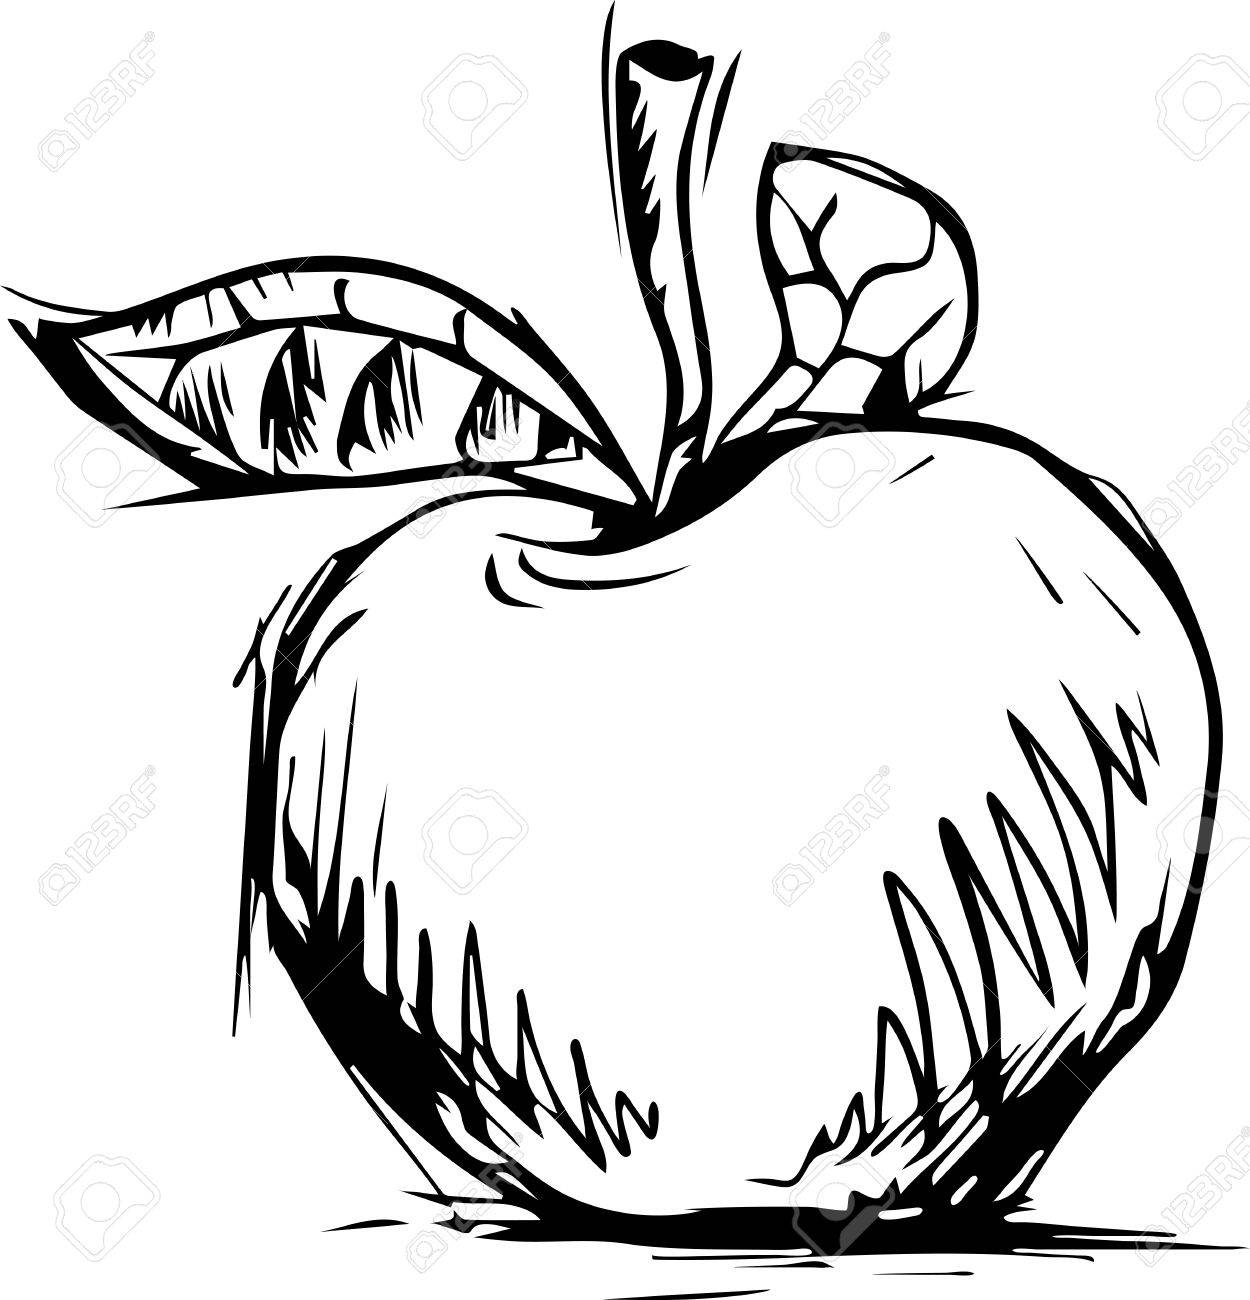 1250x1300 Apple Graphic Sketch, Vector, Isolated On White Royalty Free